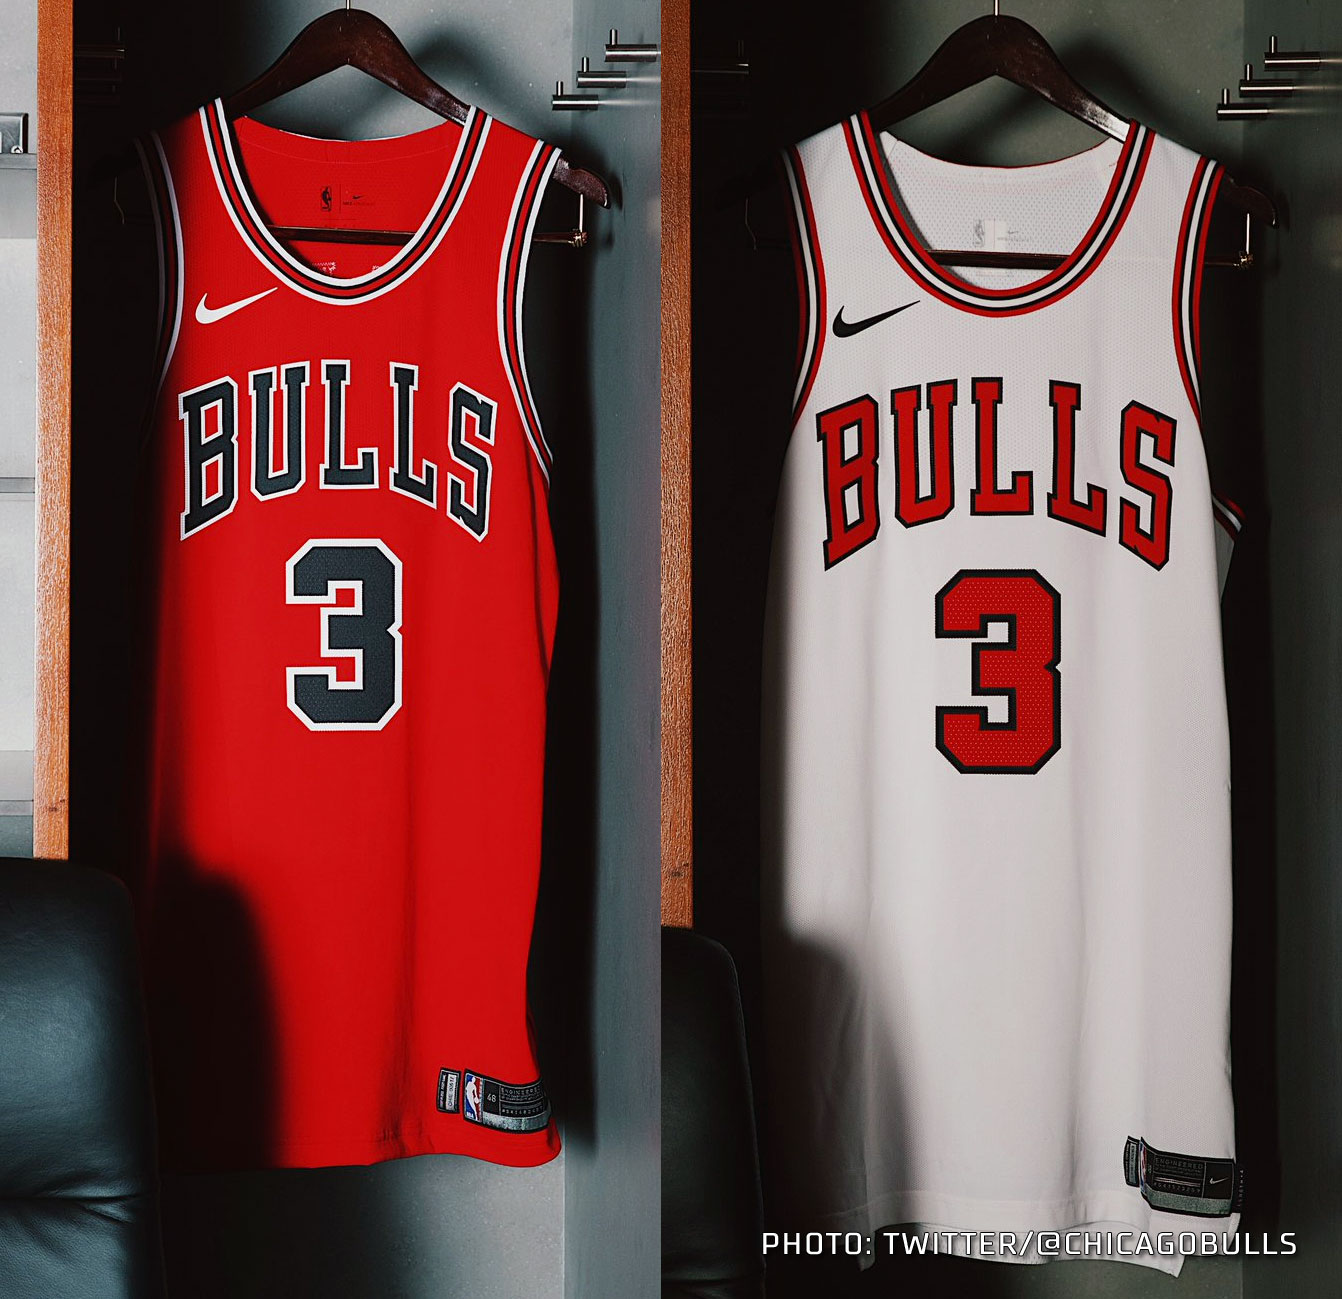 Bulls Announce Reds at Home in 2017-18